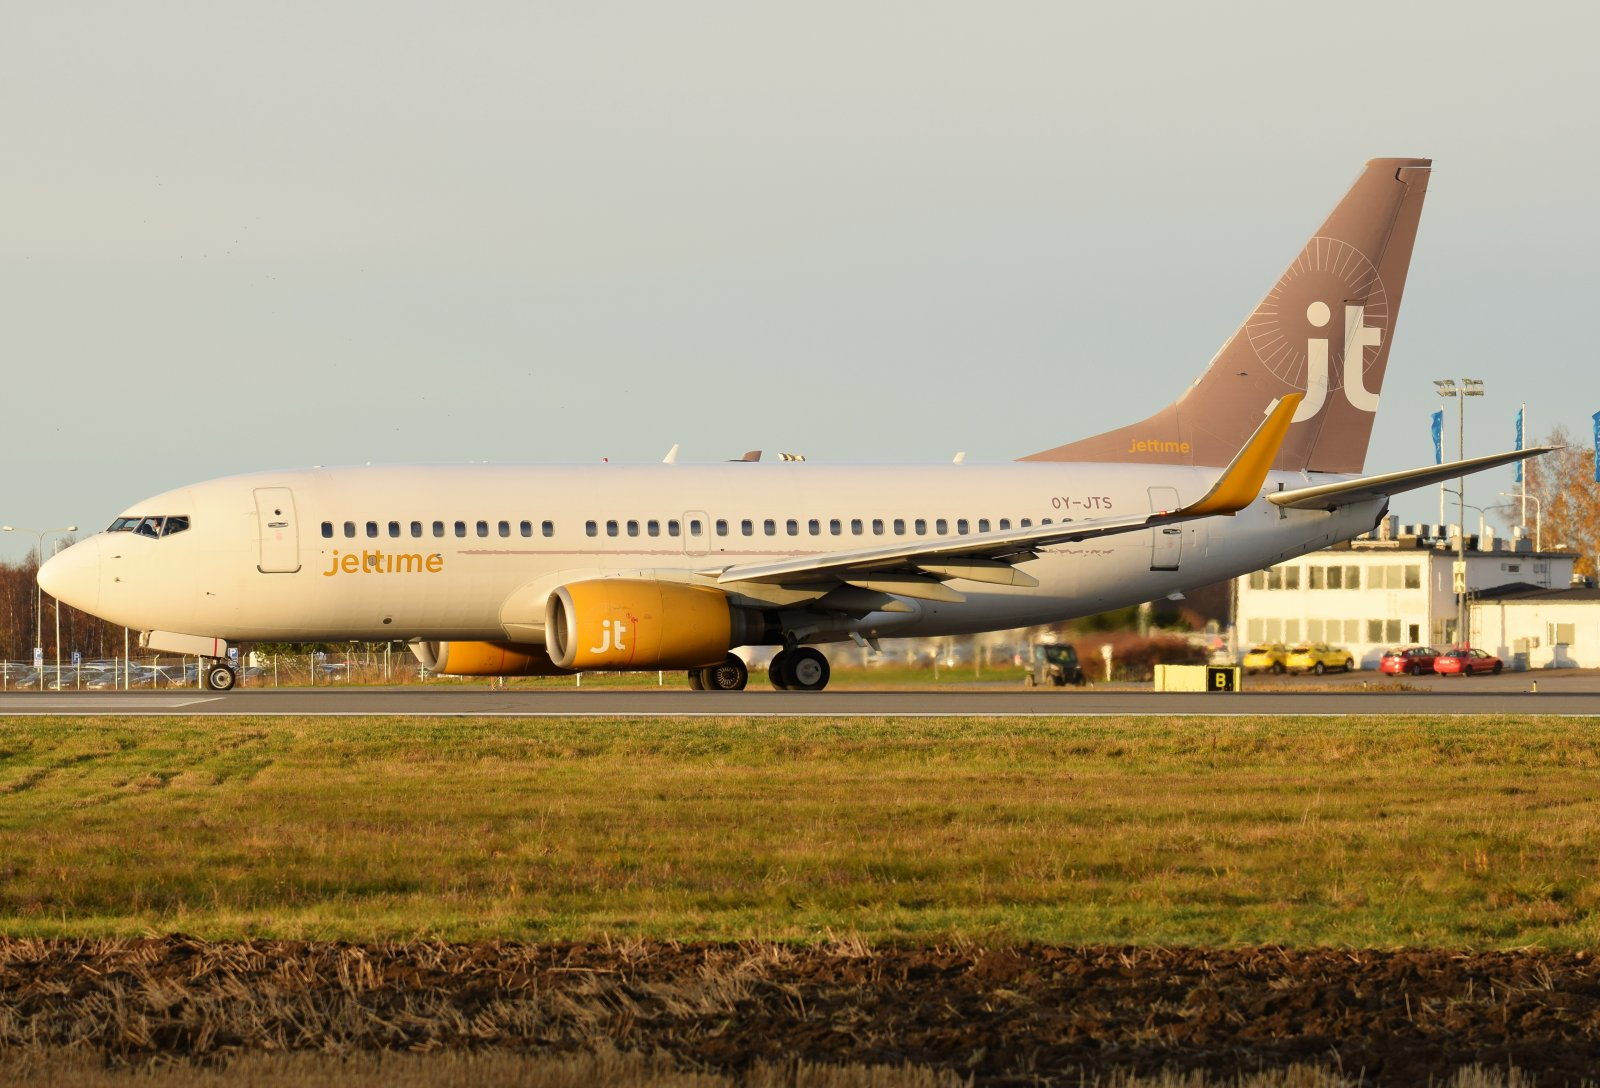 OY-JTS - Boeing 737-7K2 - Jettime - 23.10.2019